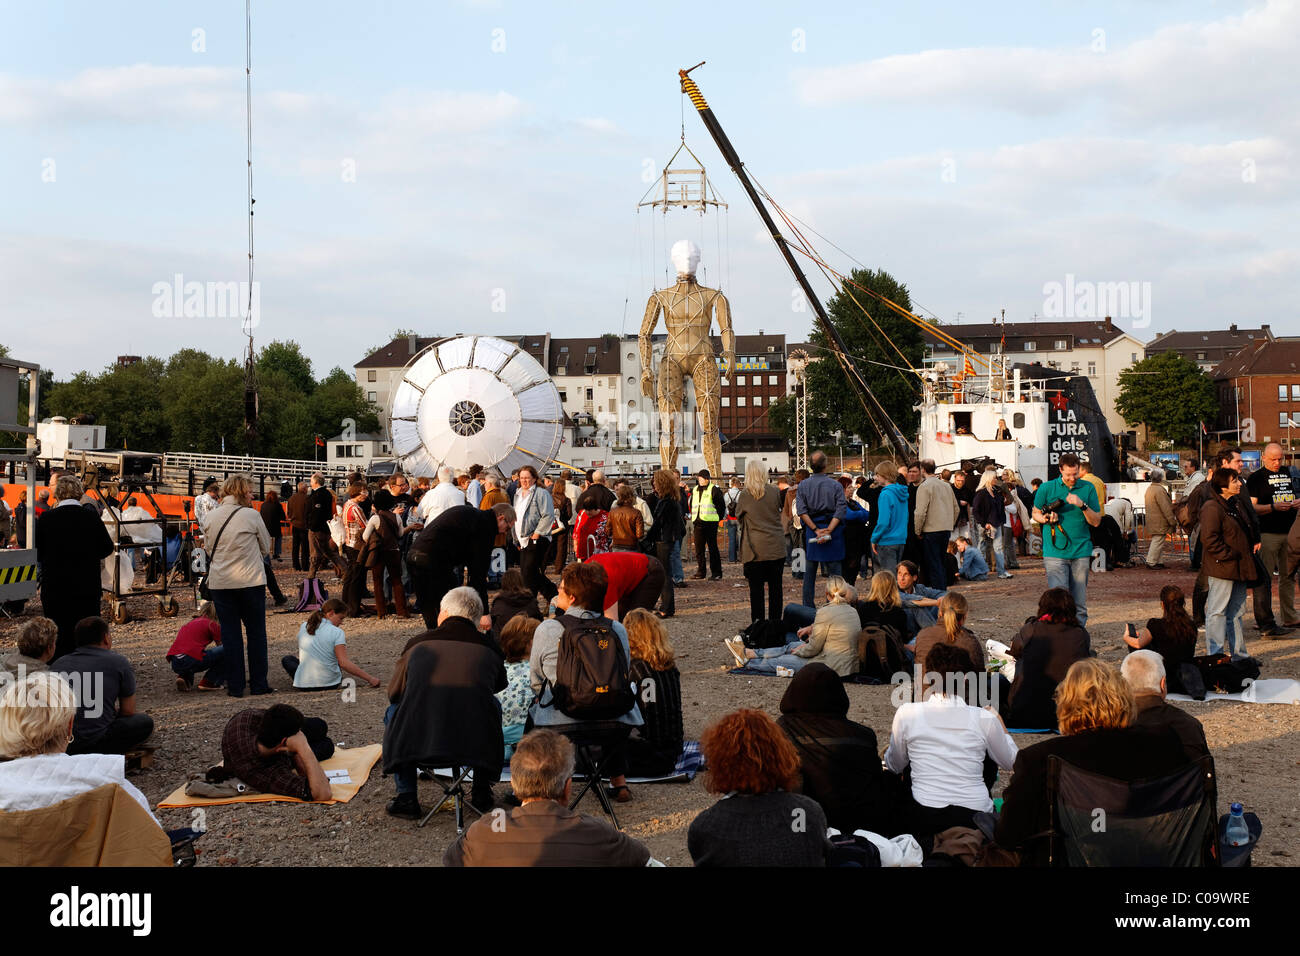 Spectators on the Mercatorinsel island waiting for Global Rheingold, open-air theater by La Fura dels Baus, Duisburg - Stock Image